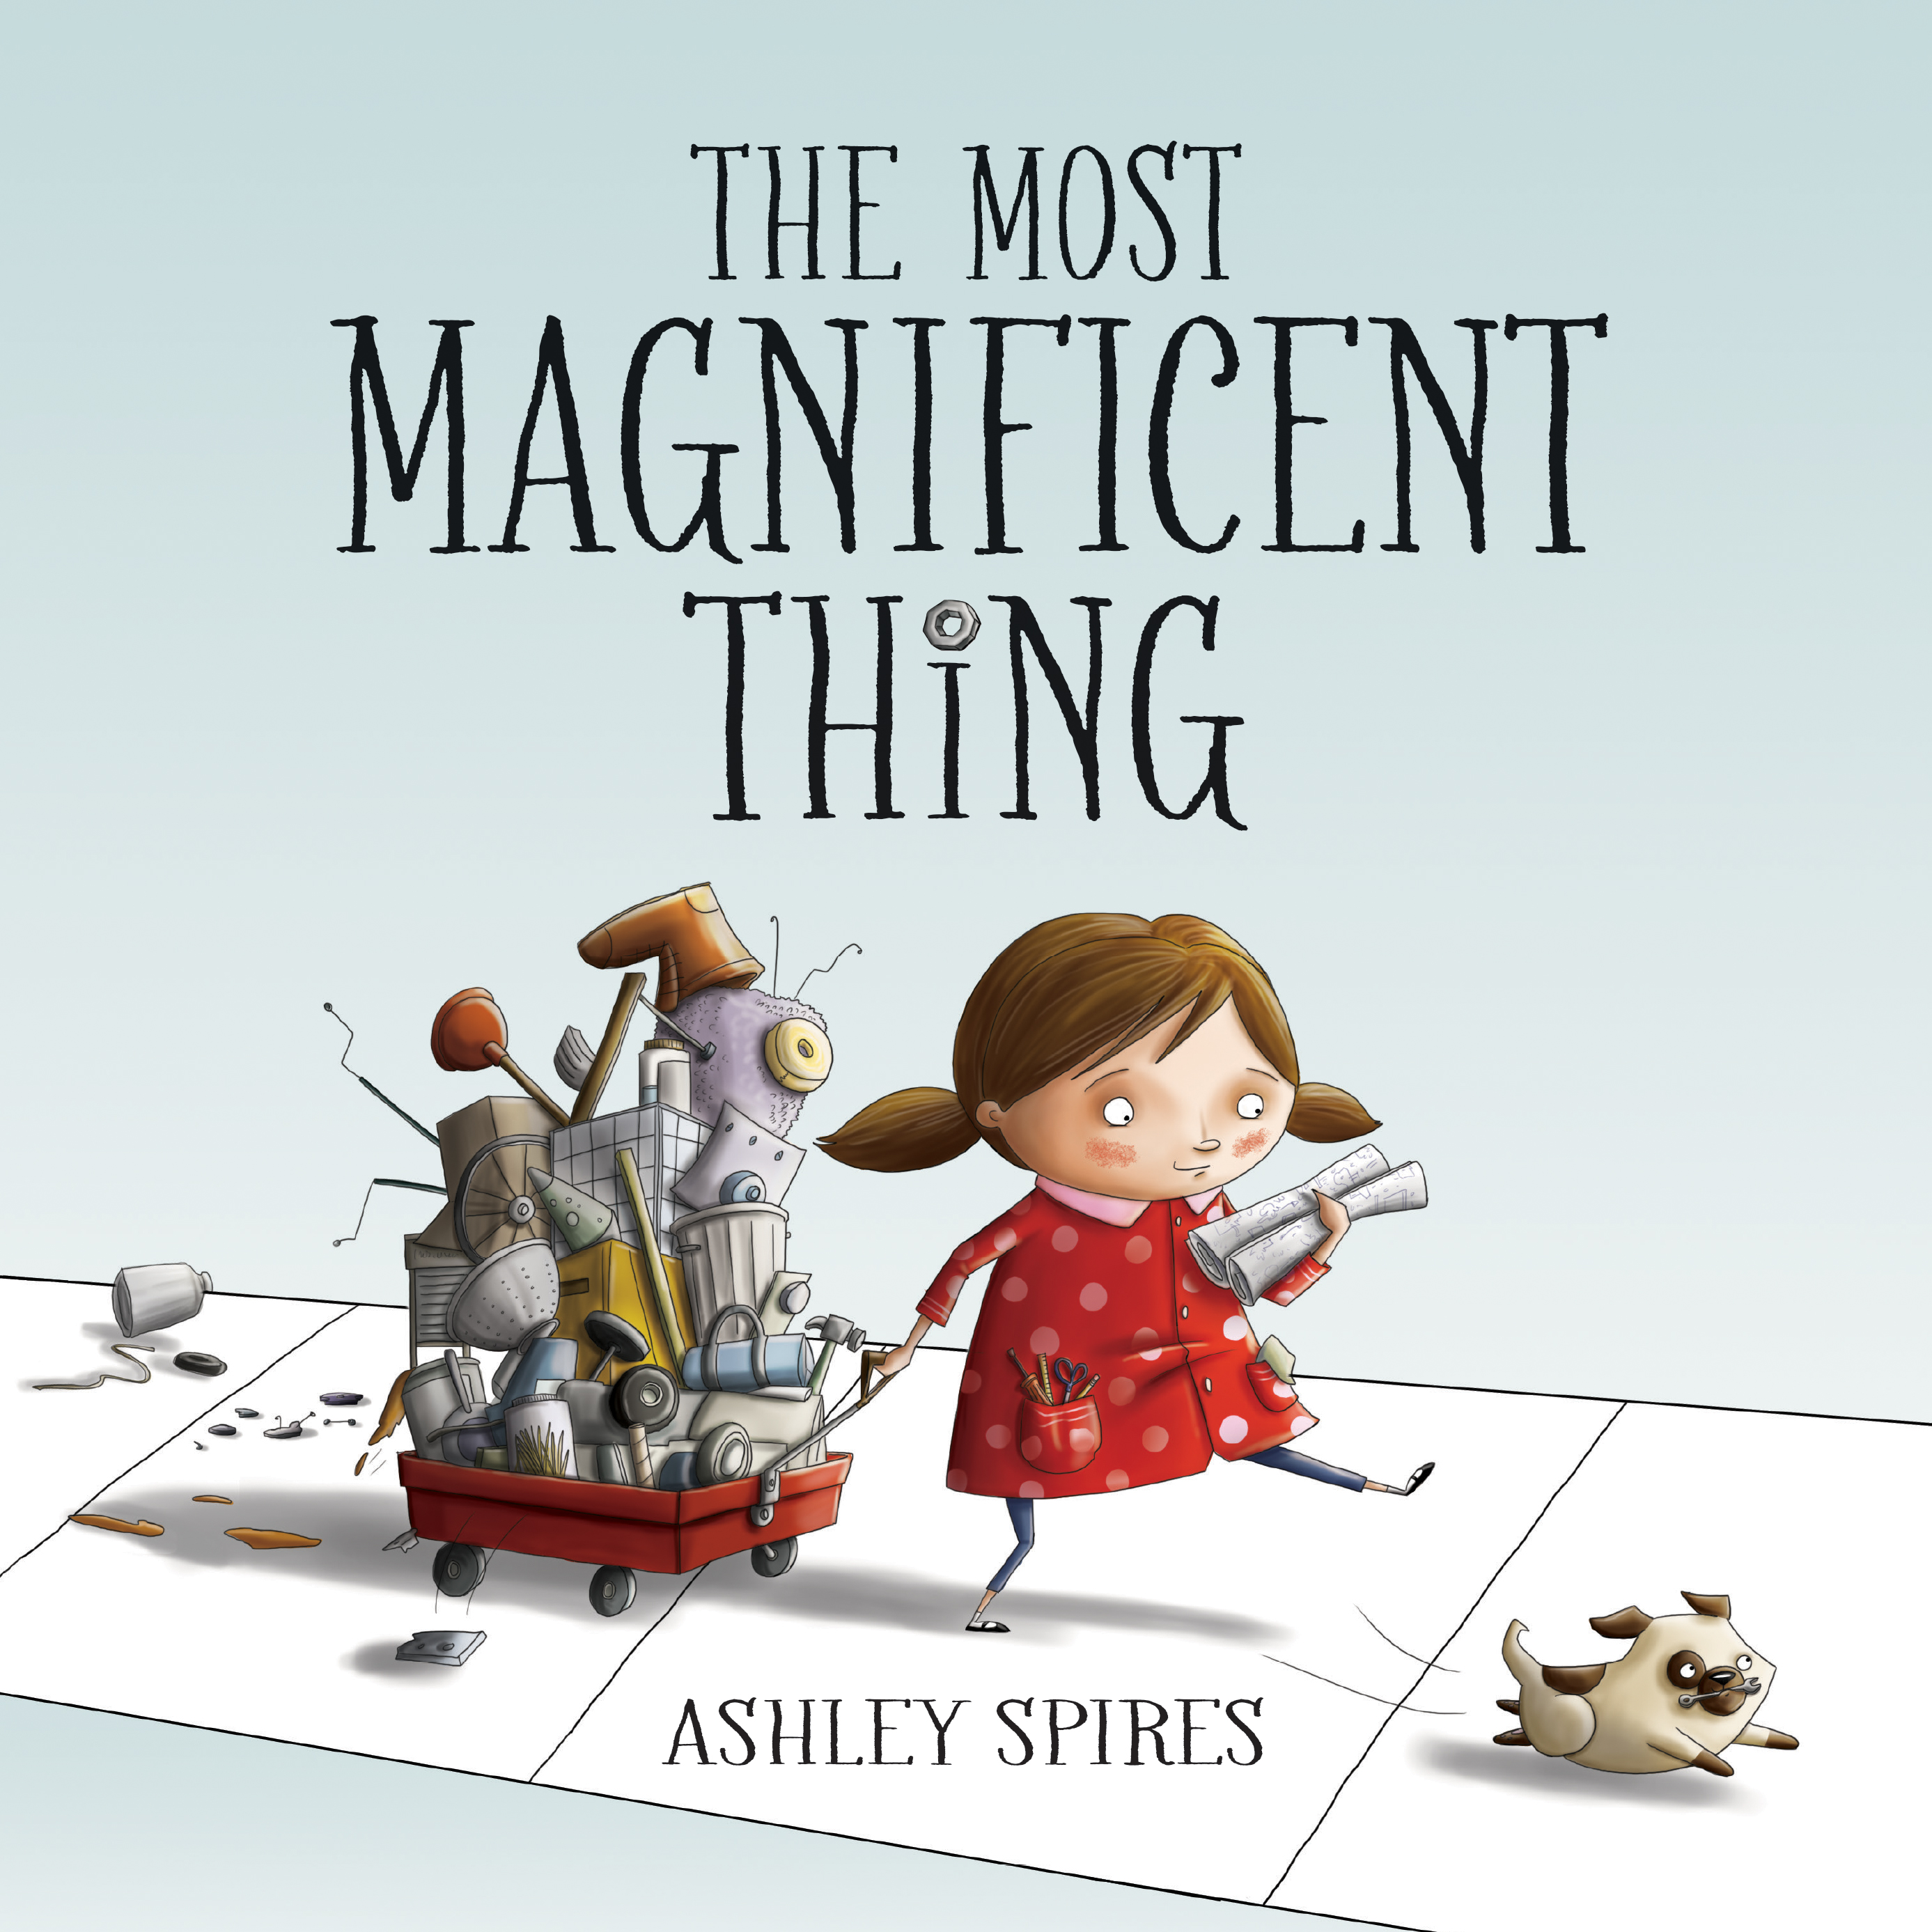 The most magnificent thing - bibliophile review